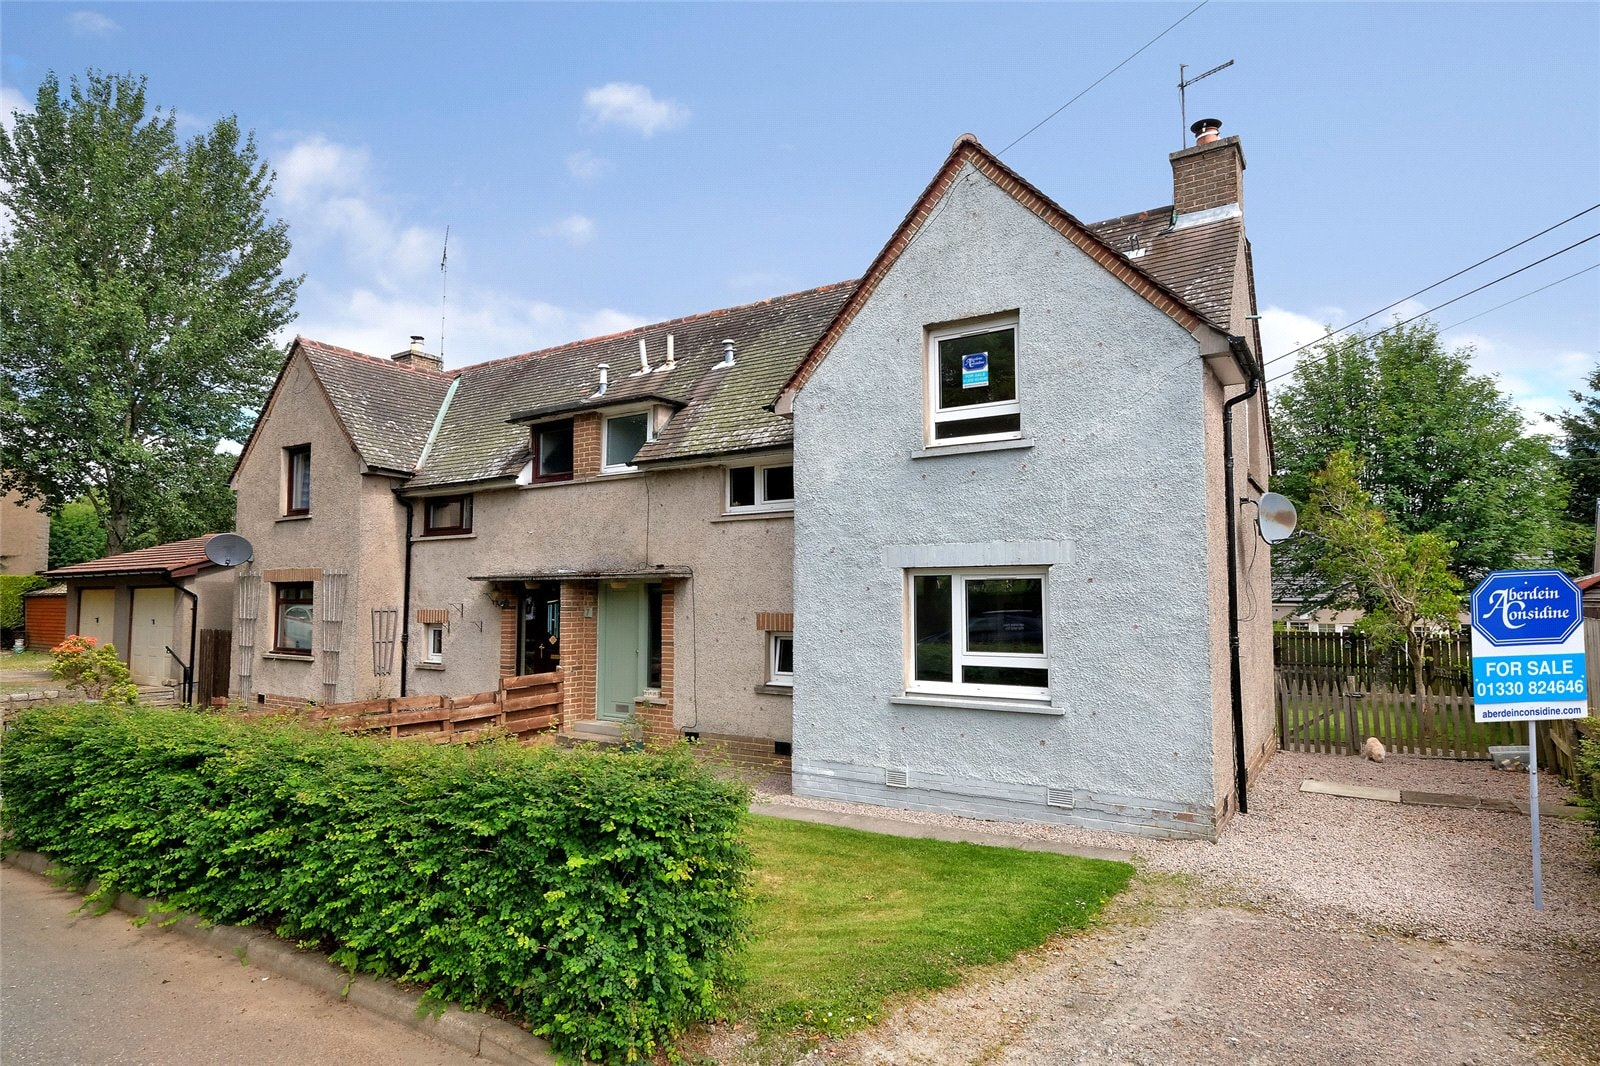 Aberdeenshire Property of the Week: 7 Glenwood Cottages